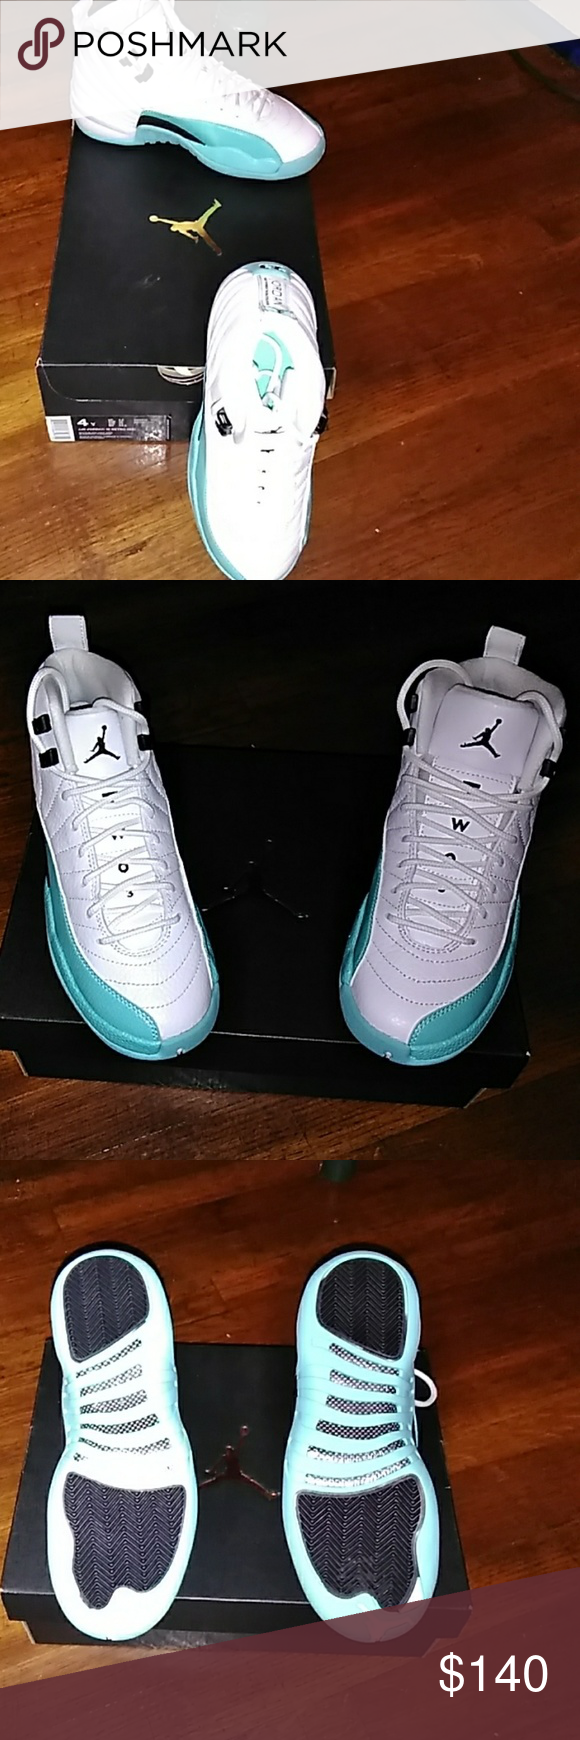 94885373f10138 Air Jordan 12 Retro(GS) Air Jordan 12 Retro s never worn. Brand new in the  box. (Was to little for my little girl) Great for gift. Release dates. Nike  Other